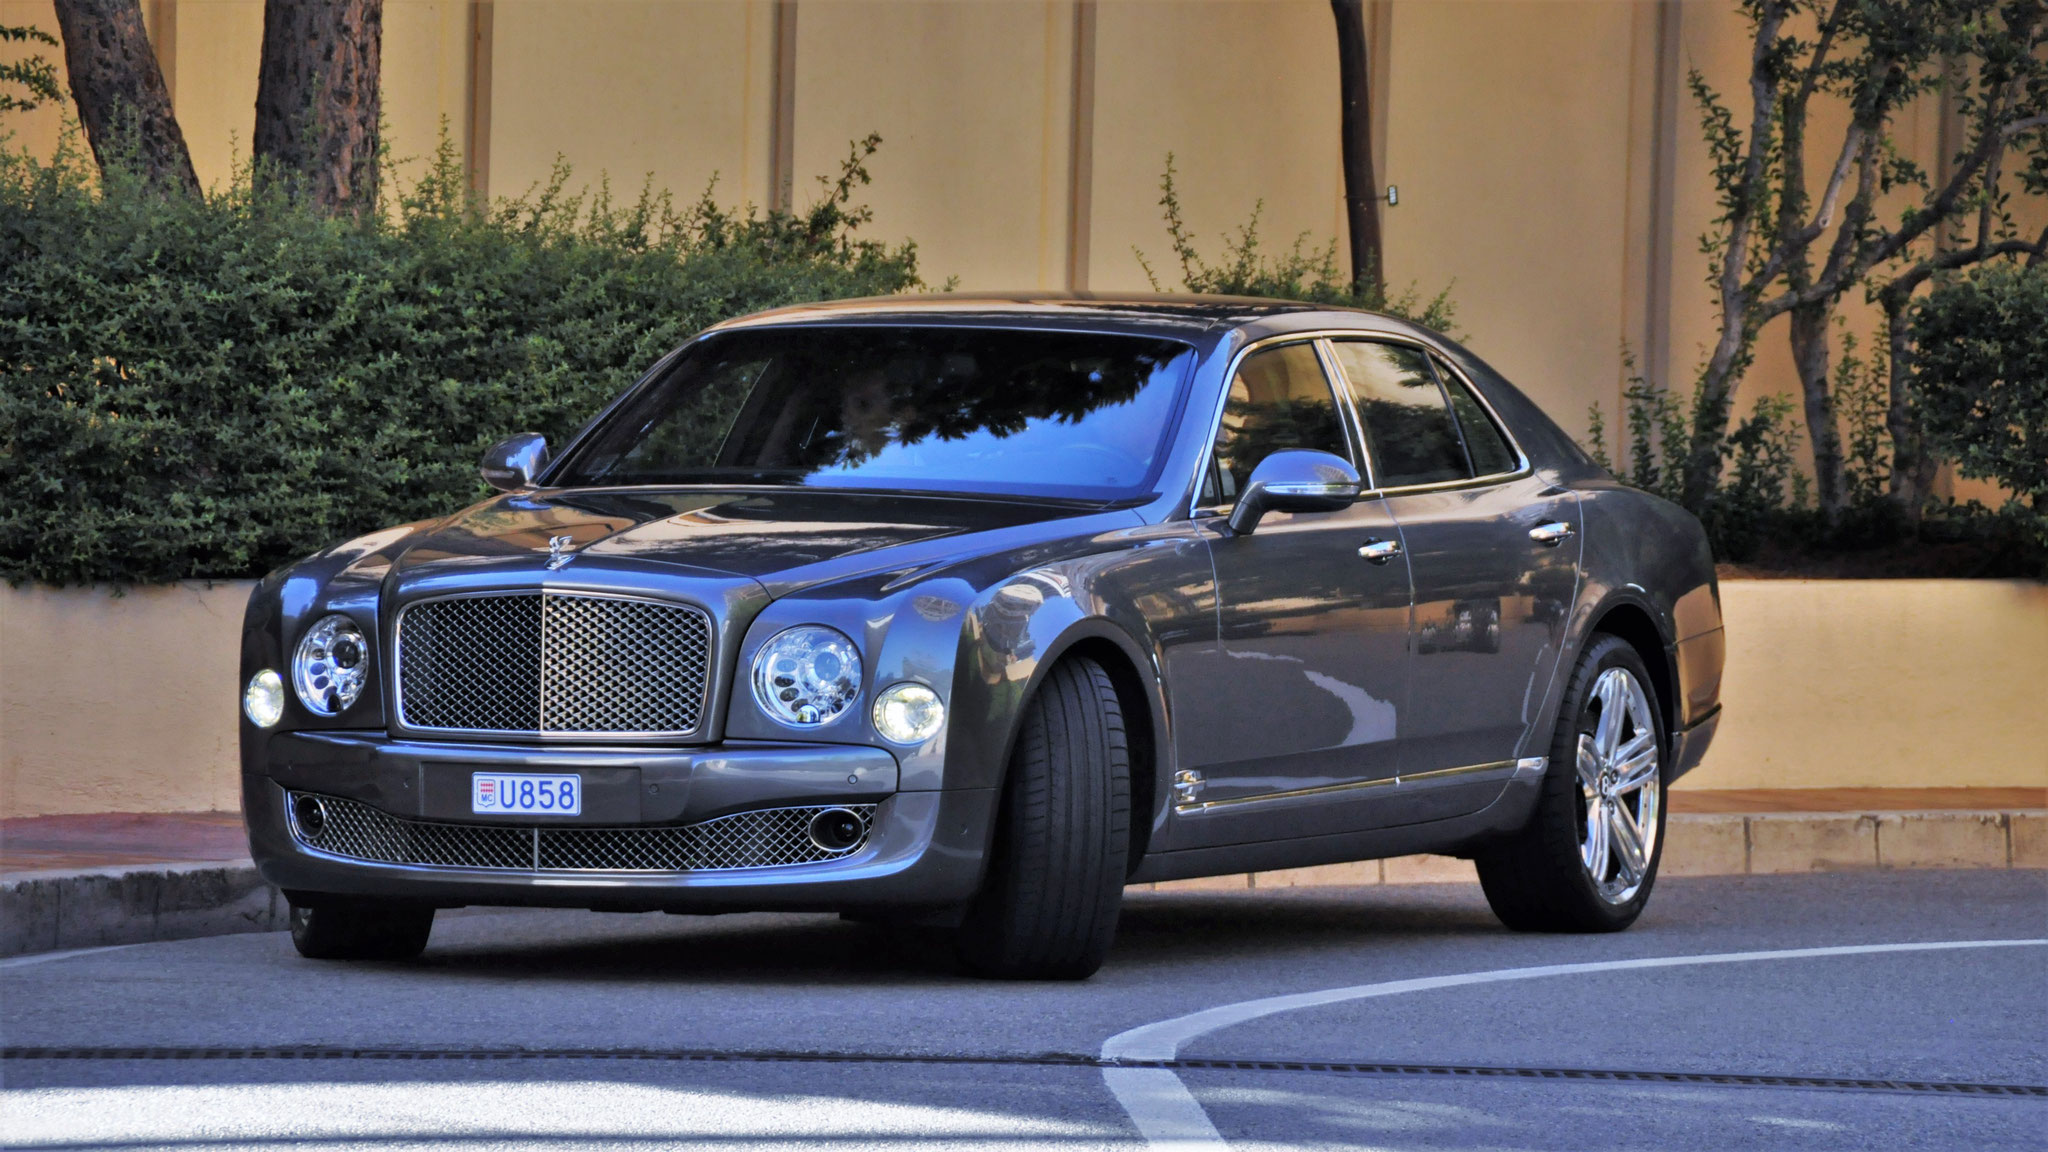 Bentley Mulsanne - U858 (MC)